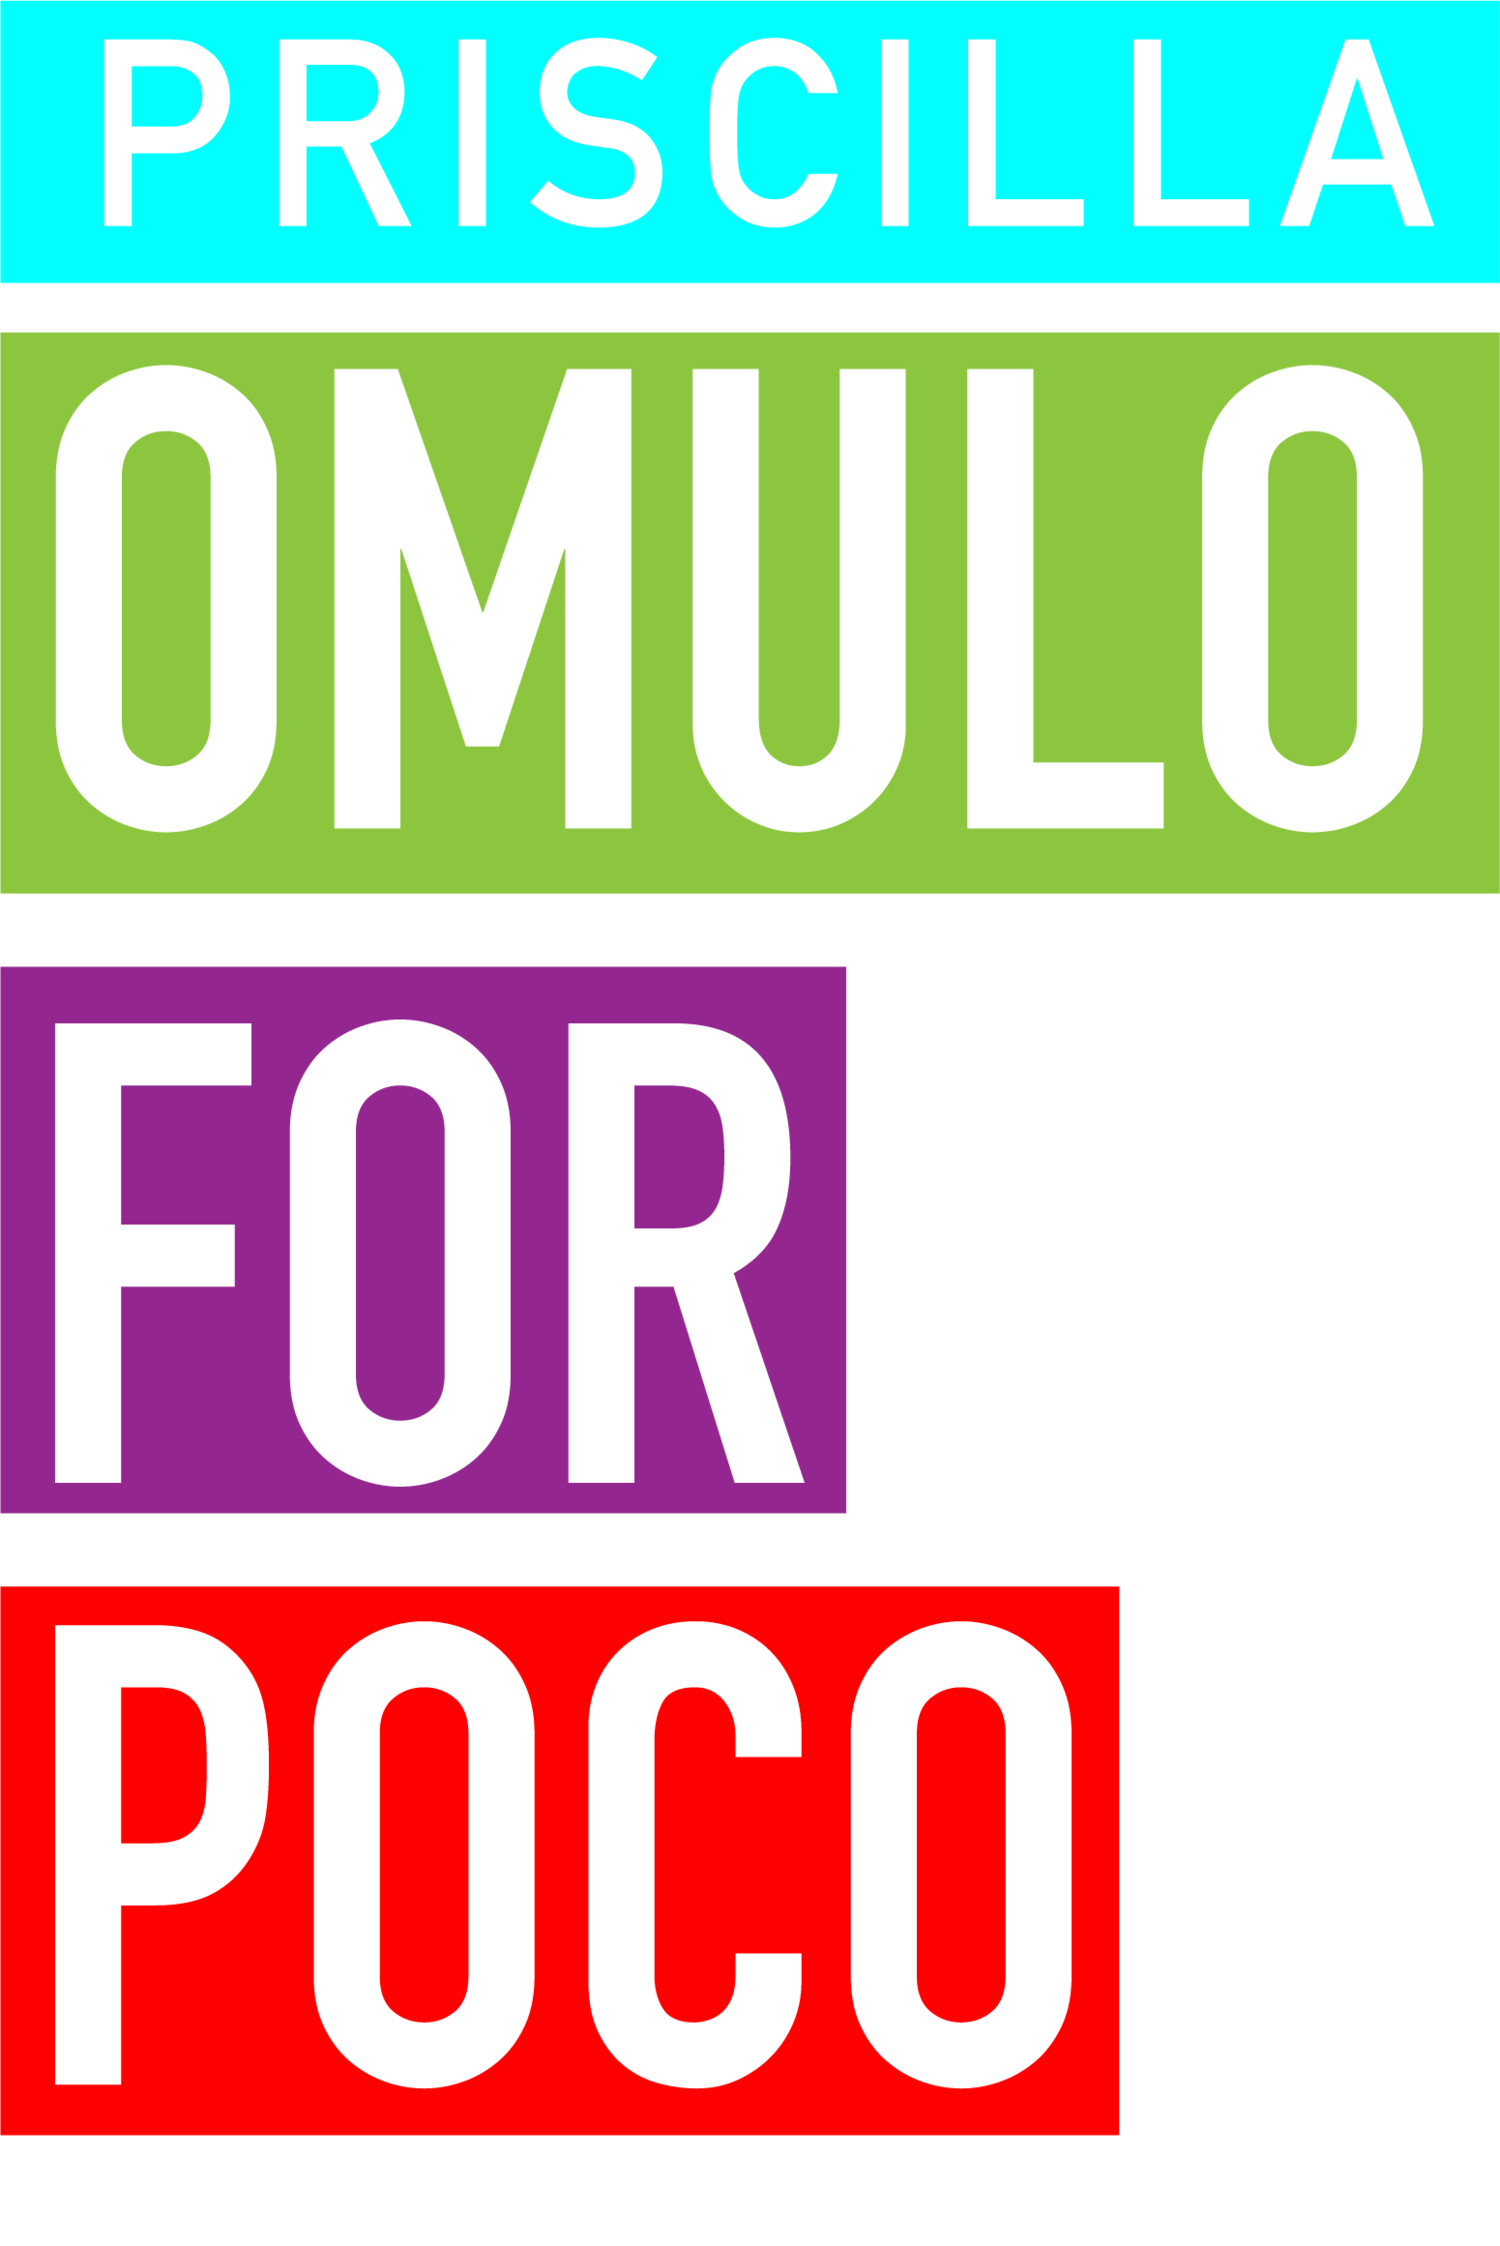 Priscilla Omulo | Candidate Port Coquitlam City Council